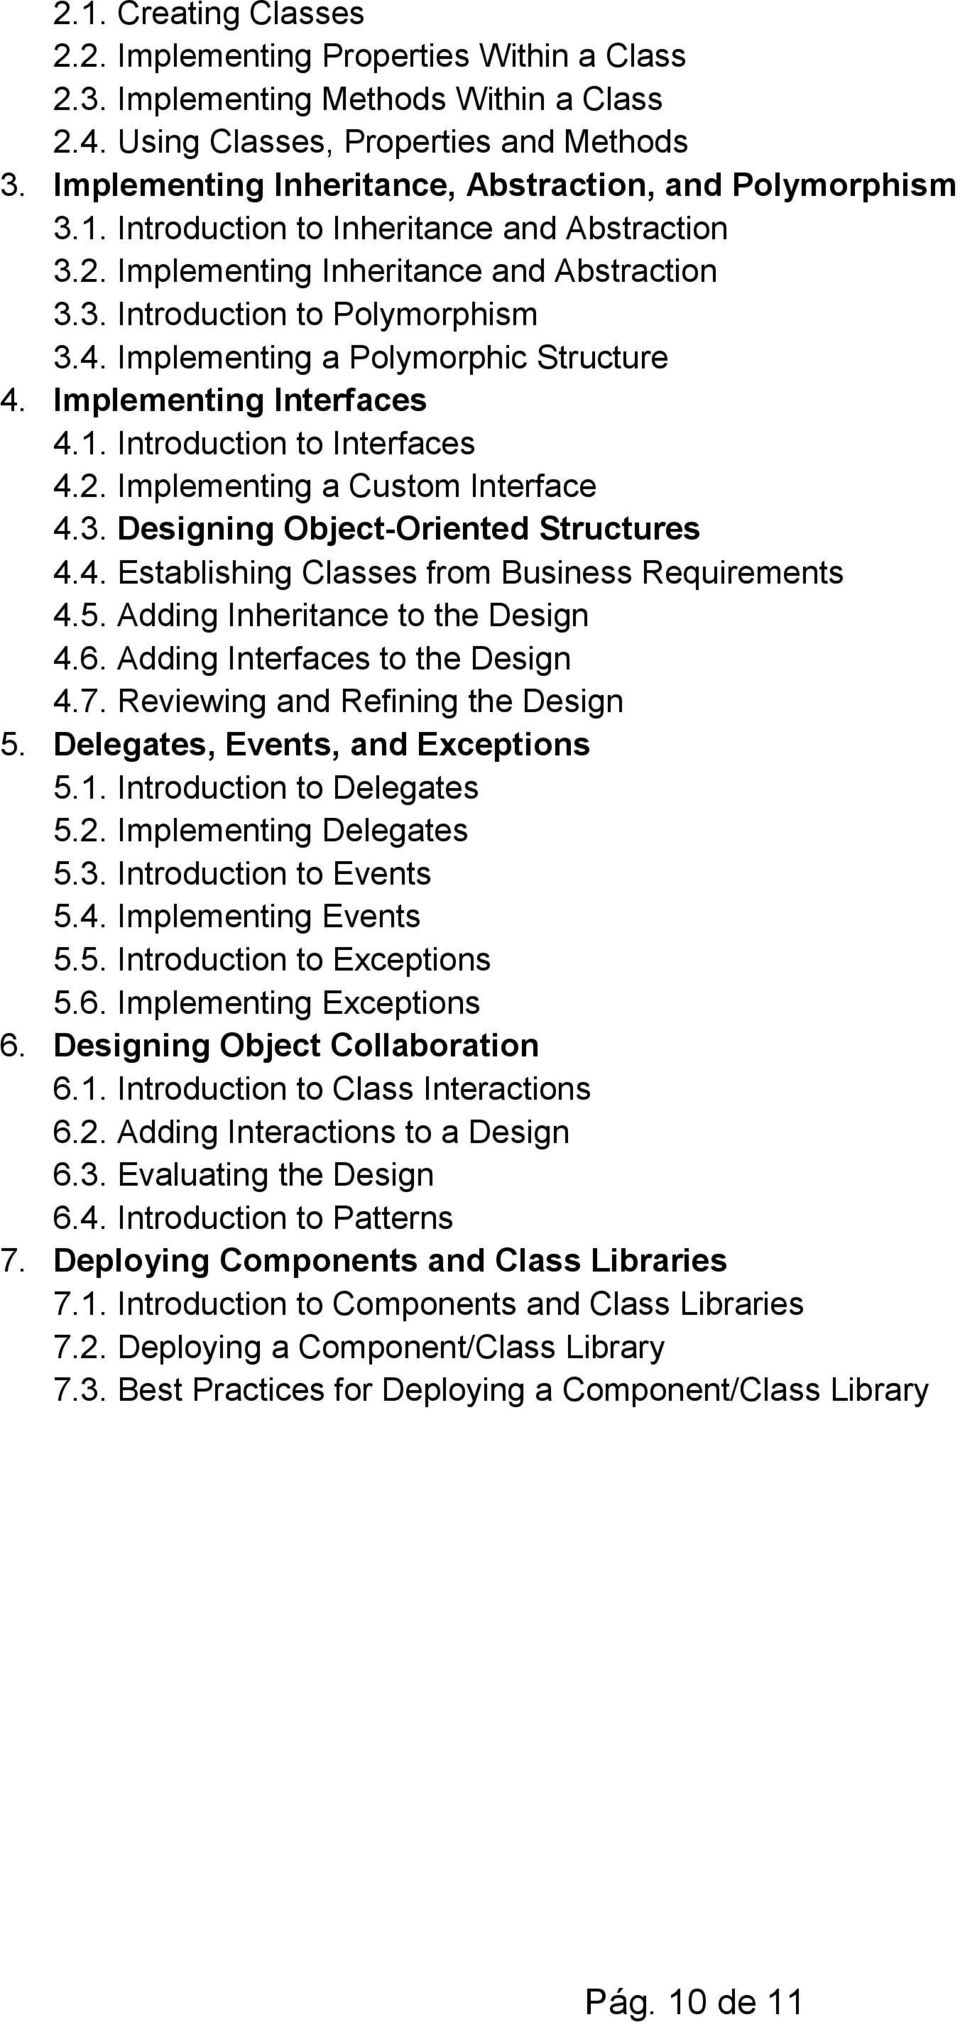 Implementing a Polymorphic Structure 4. Implementing Interfaces 4.1. Introduction to Interfaces 4.2. Implementing a Custom Interface 4.3. Designing Object-Oriented Structures 4.4. Establishing Classes from Business Requirements 4.